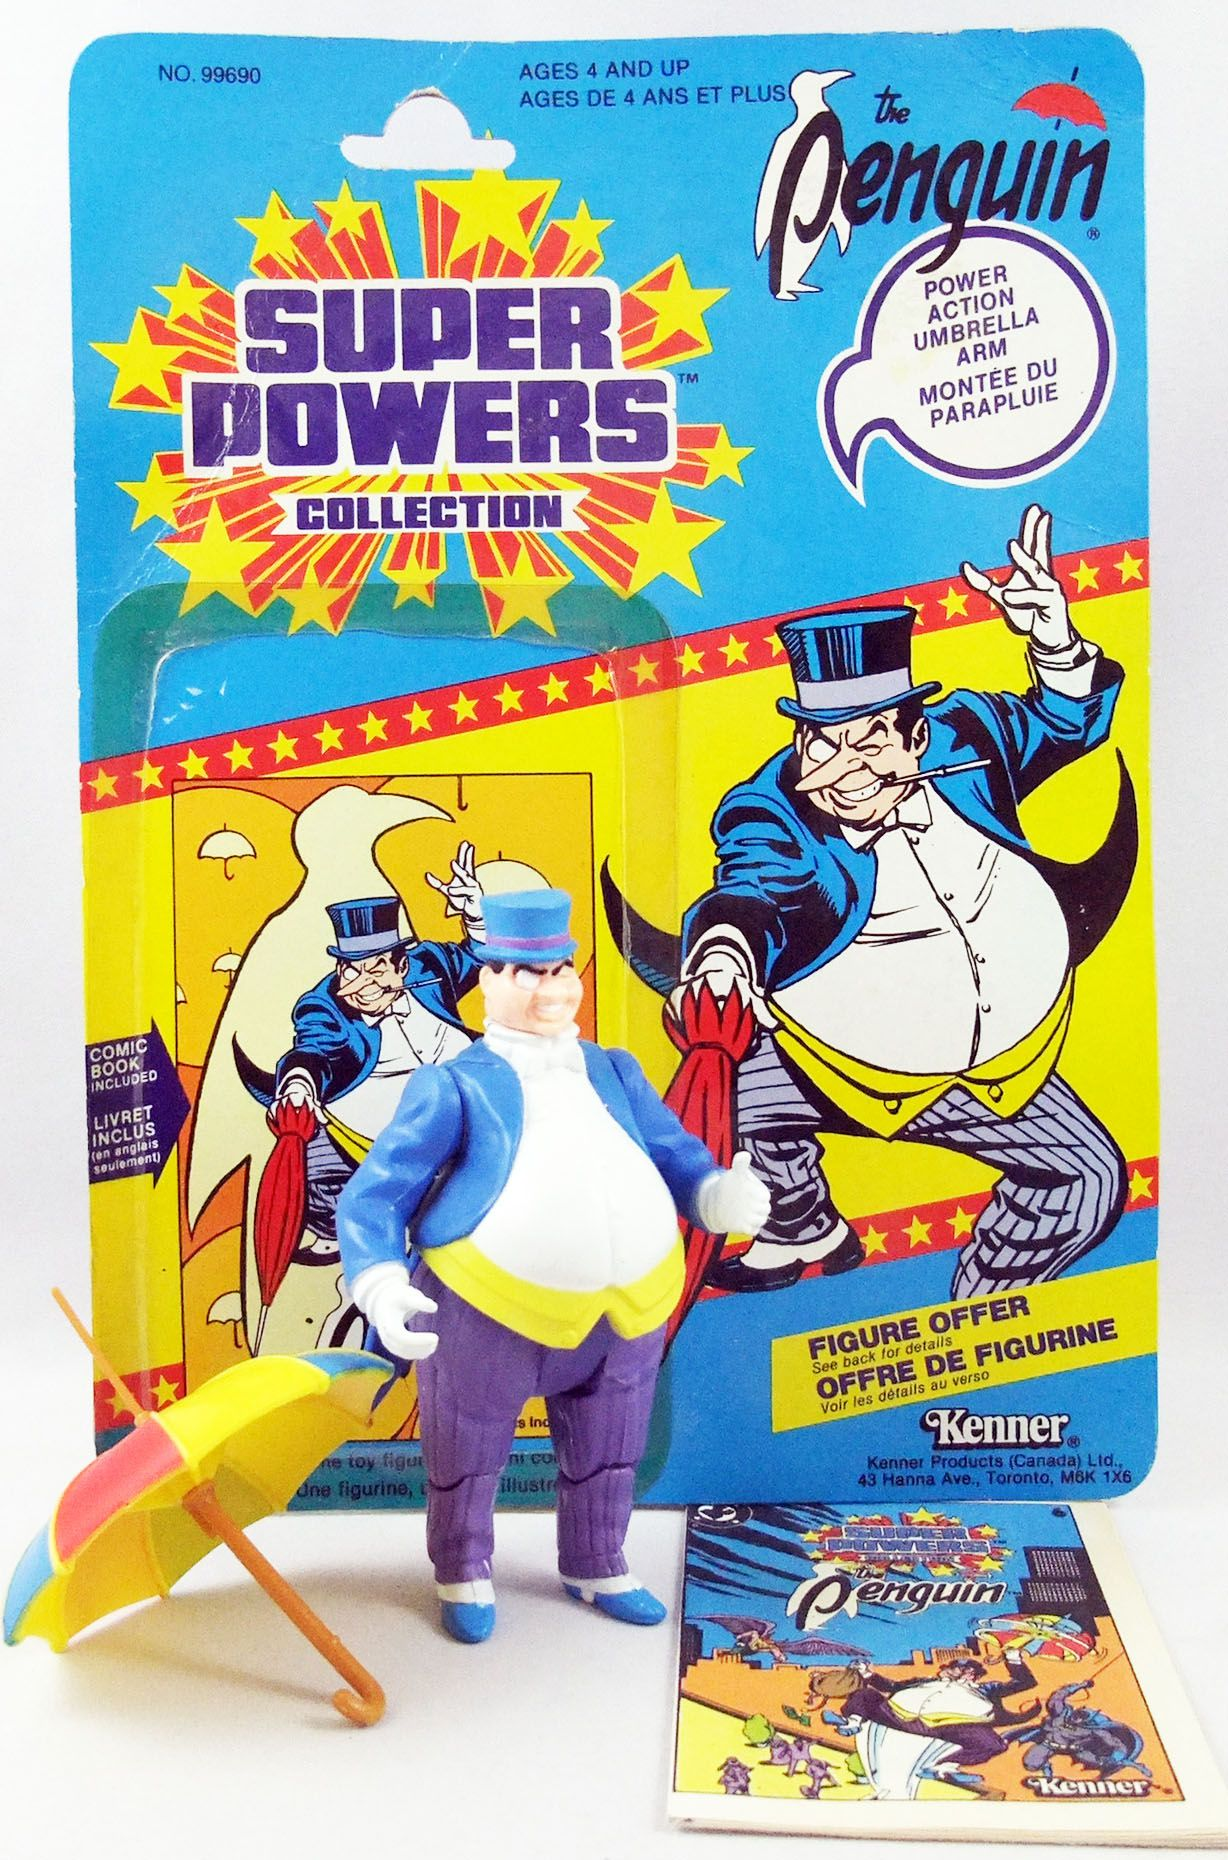 DC Super Powers - Kenner - The Penguin (mint with cardback)